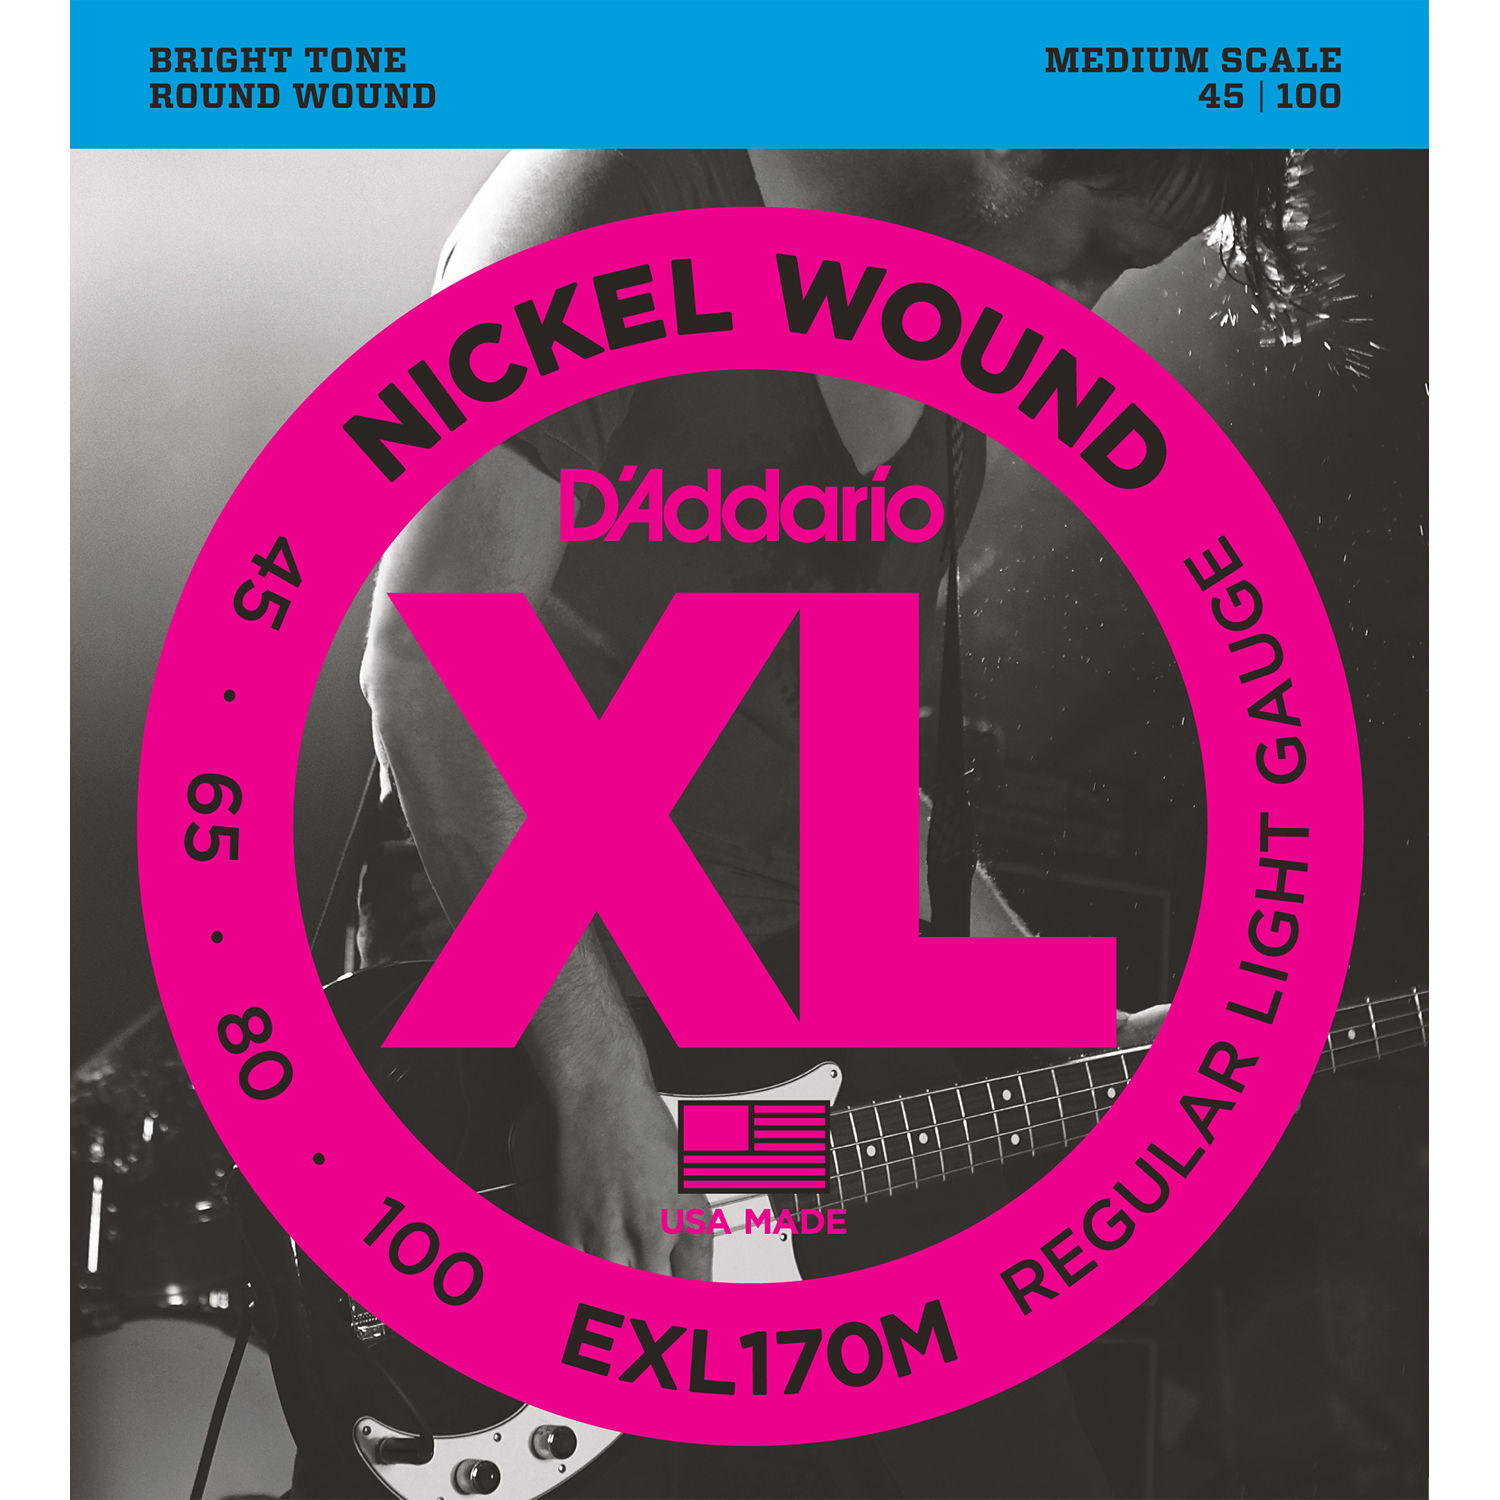 D'Addario EXL170M Nickel Wound Bass Guitar Strings, Light, 45-100, Medium Scale